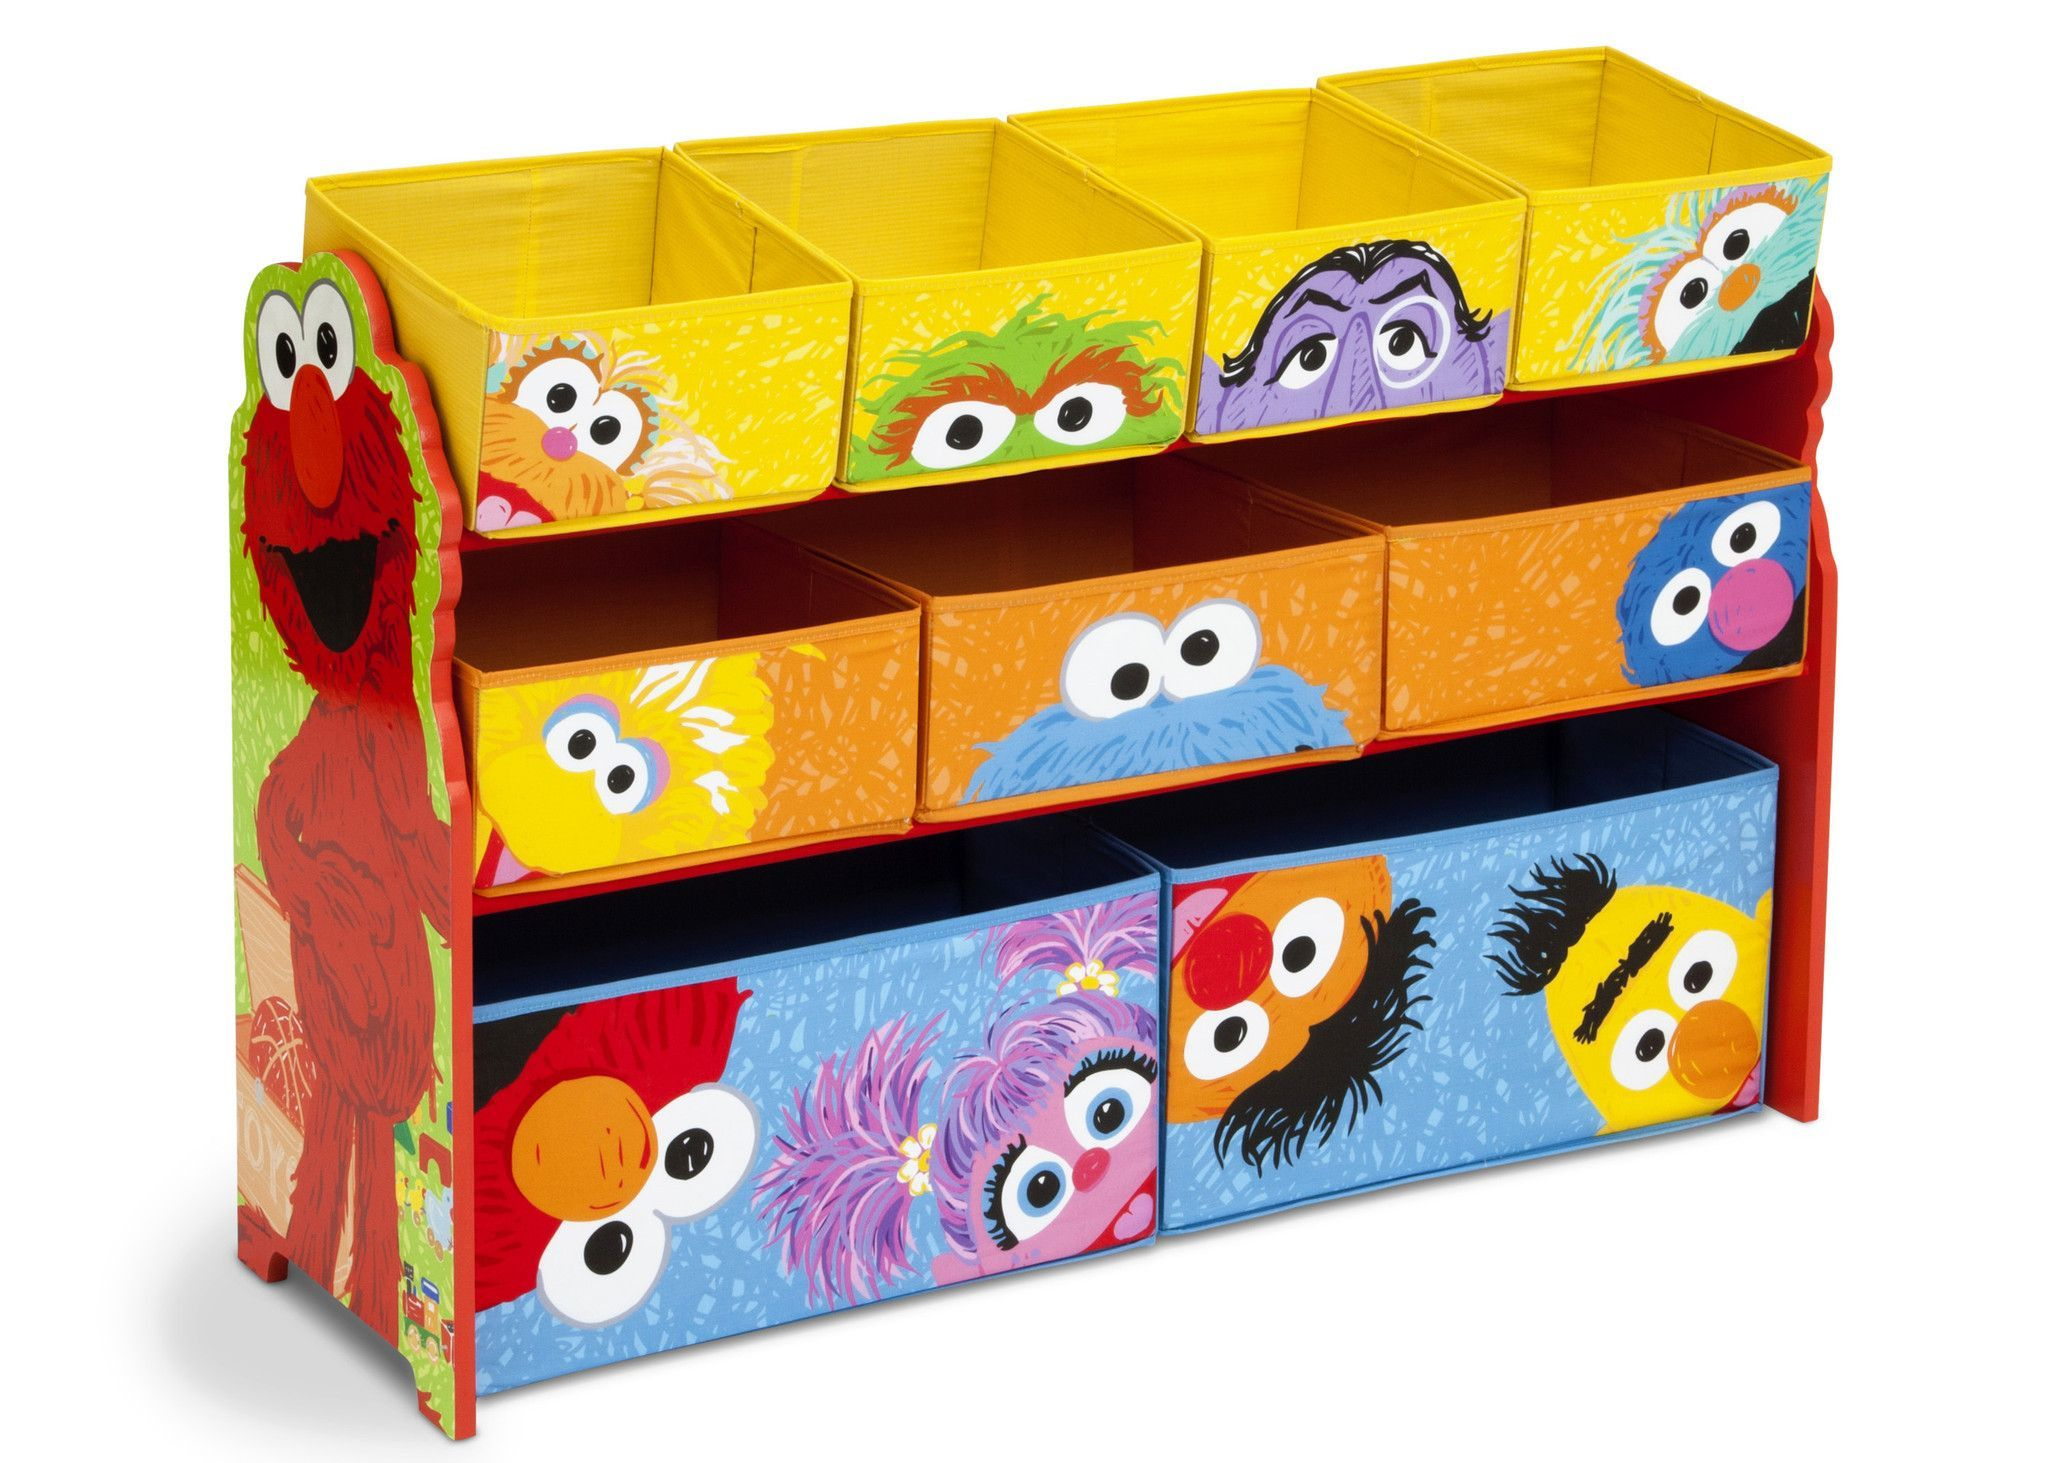 With this sesame street deluxe multi bin toy organizer of course supported by sturdy wooden frame it features nine fabric bins